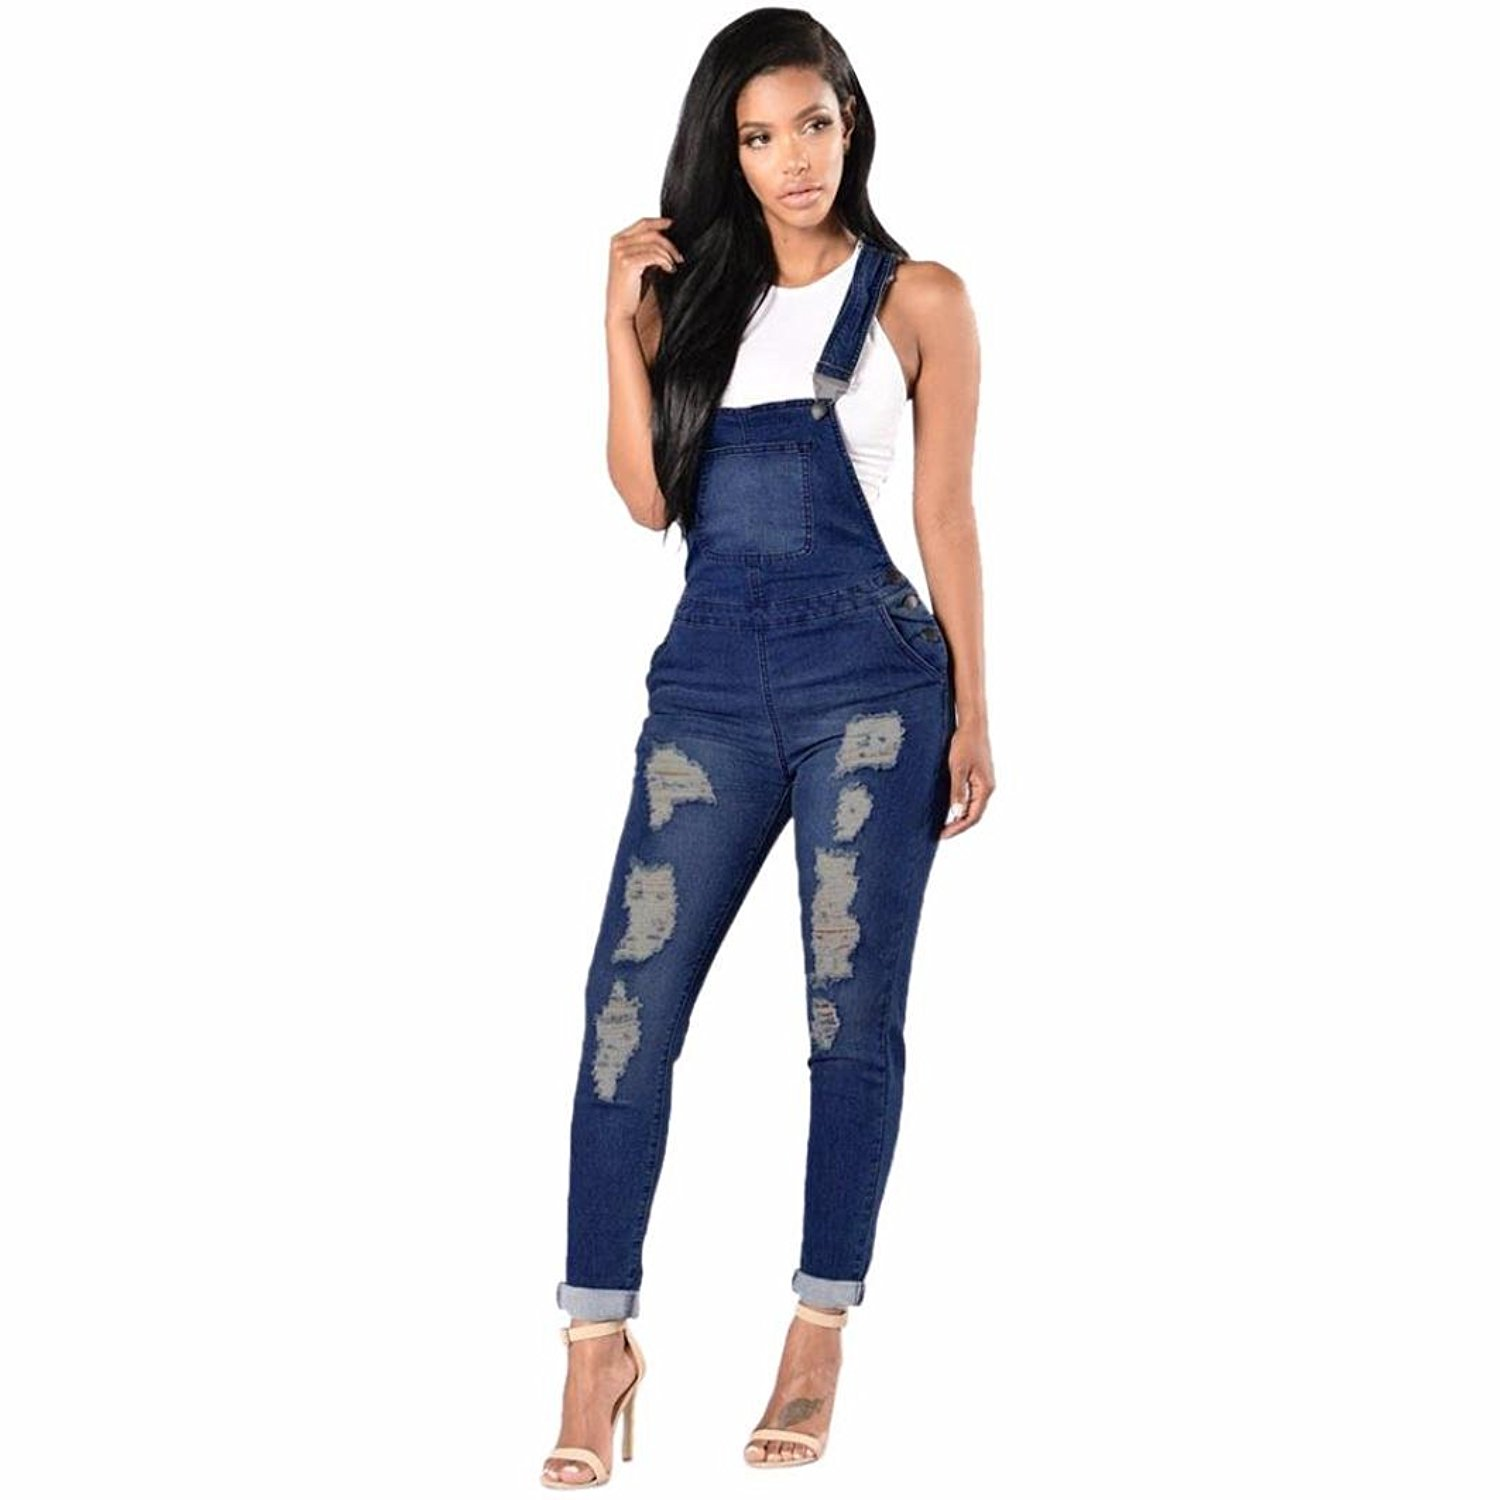 d6a6ad9b61d Greatgiftlist Women Stretchy Denim Bib Ribbed Hole Pants Overalls Jumpsuit  Romper Distressed Jeans